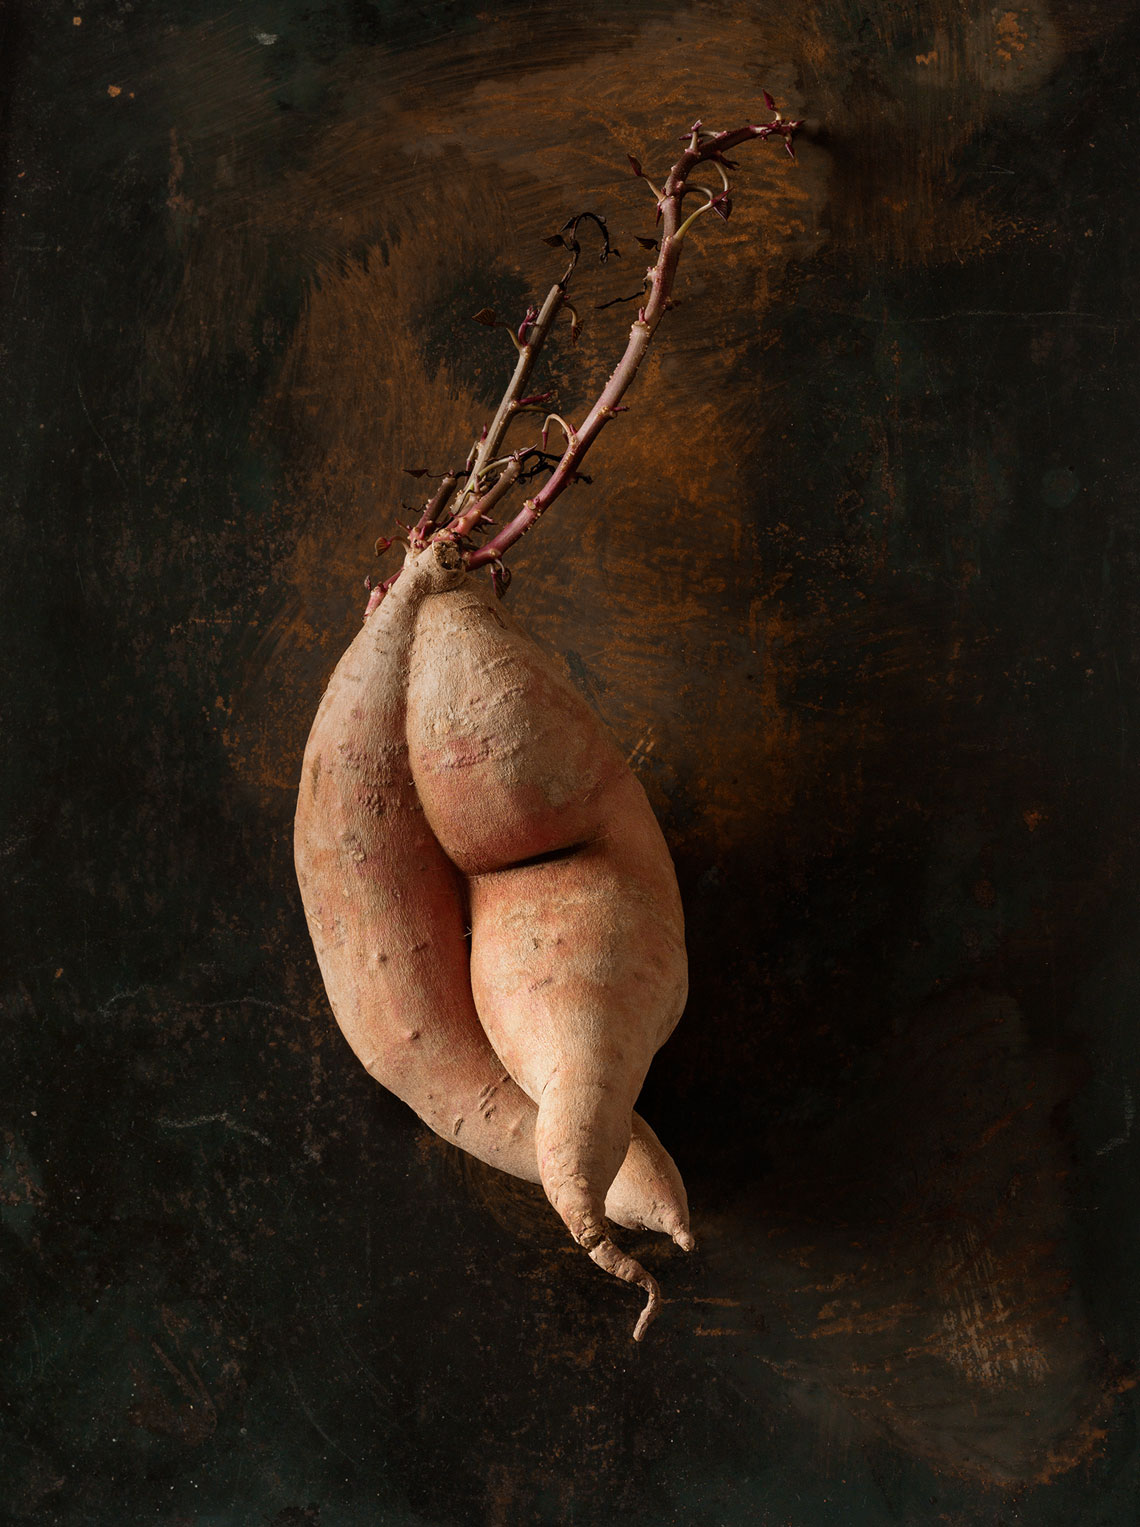 Roots_Series--Doras_sweetpotato-27670-as-Smart-Object-1